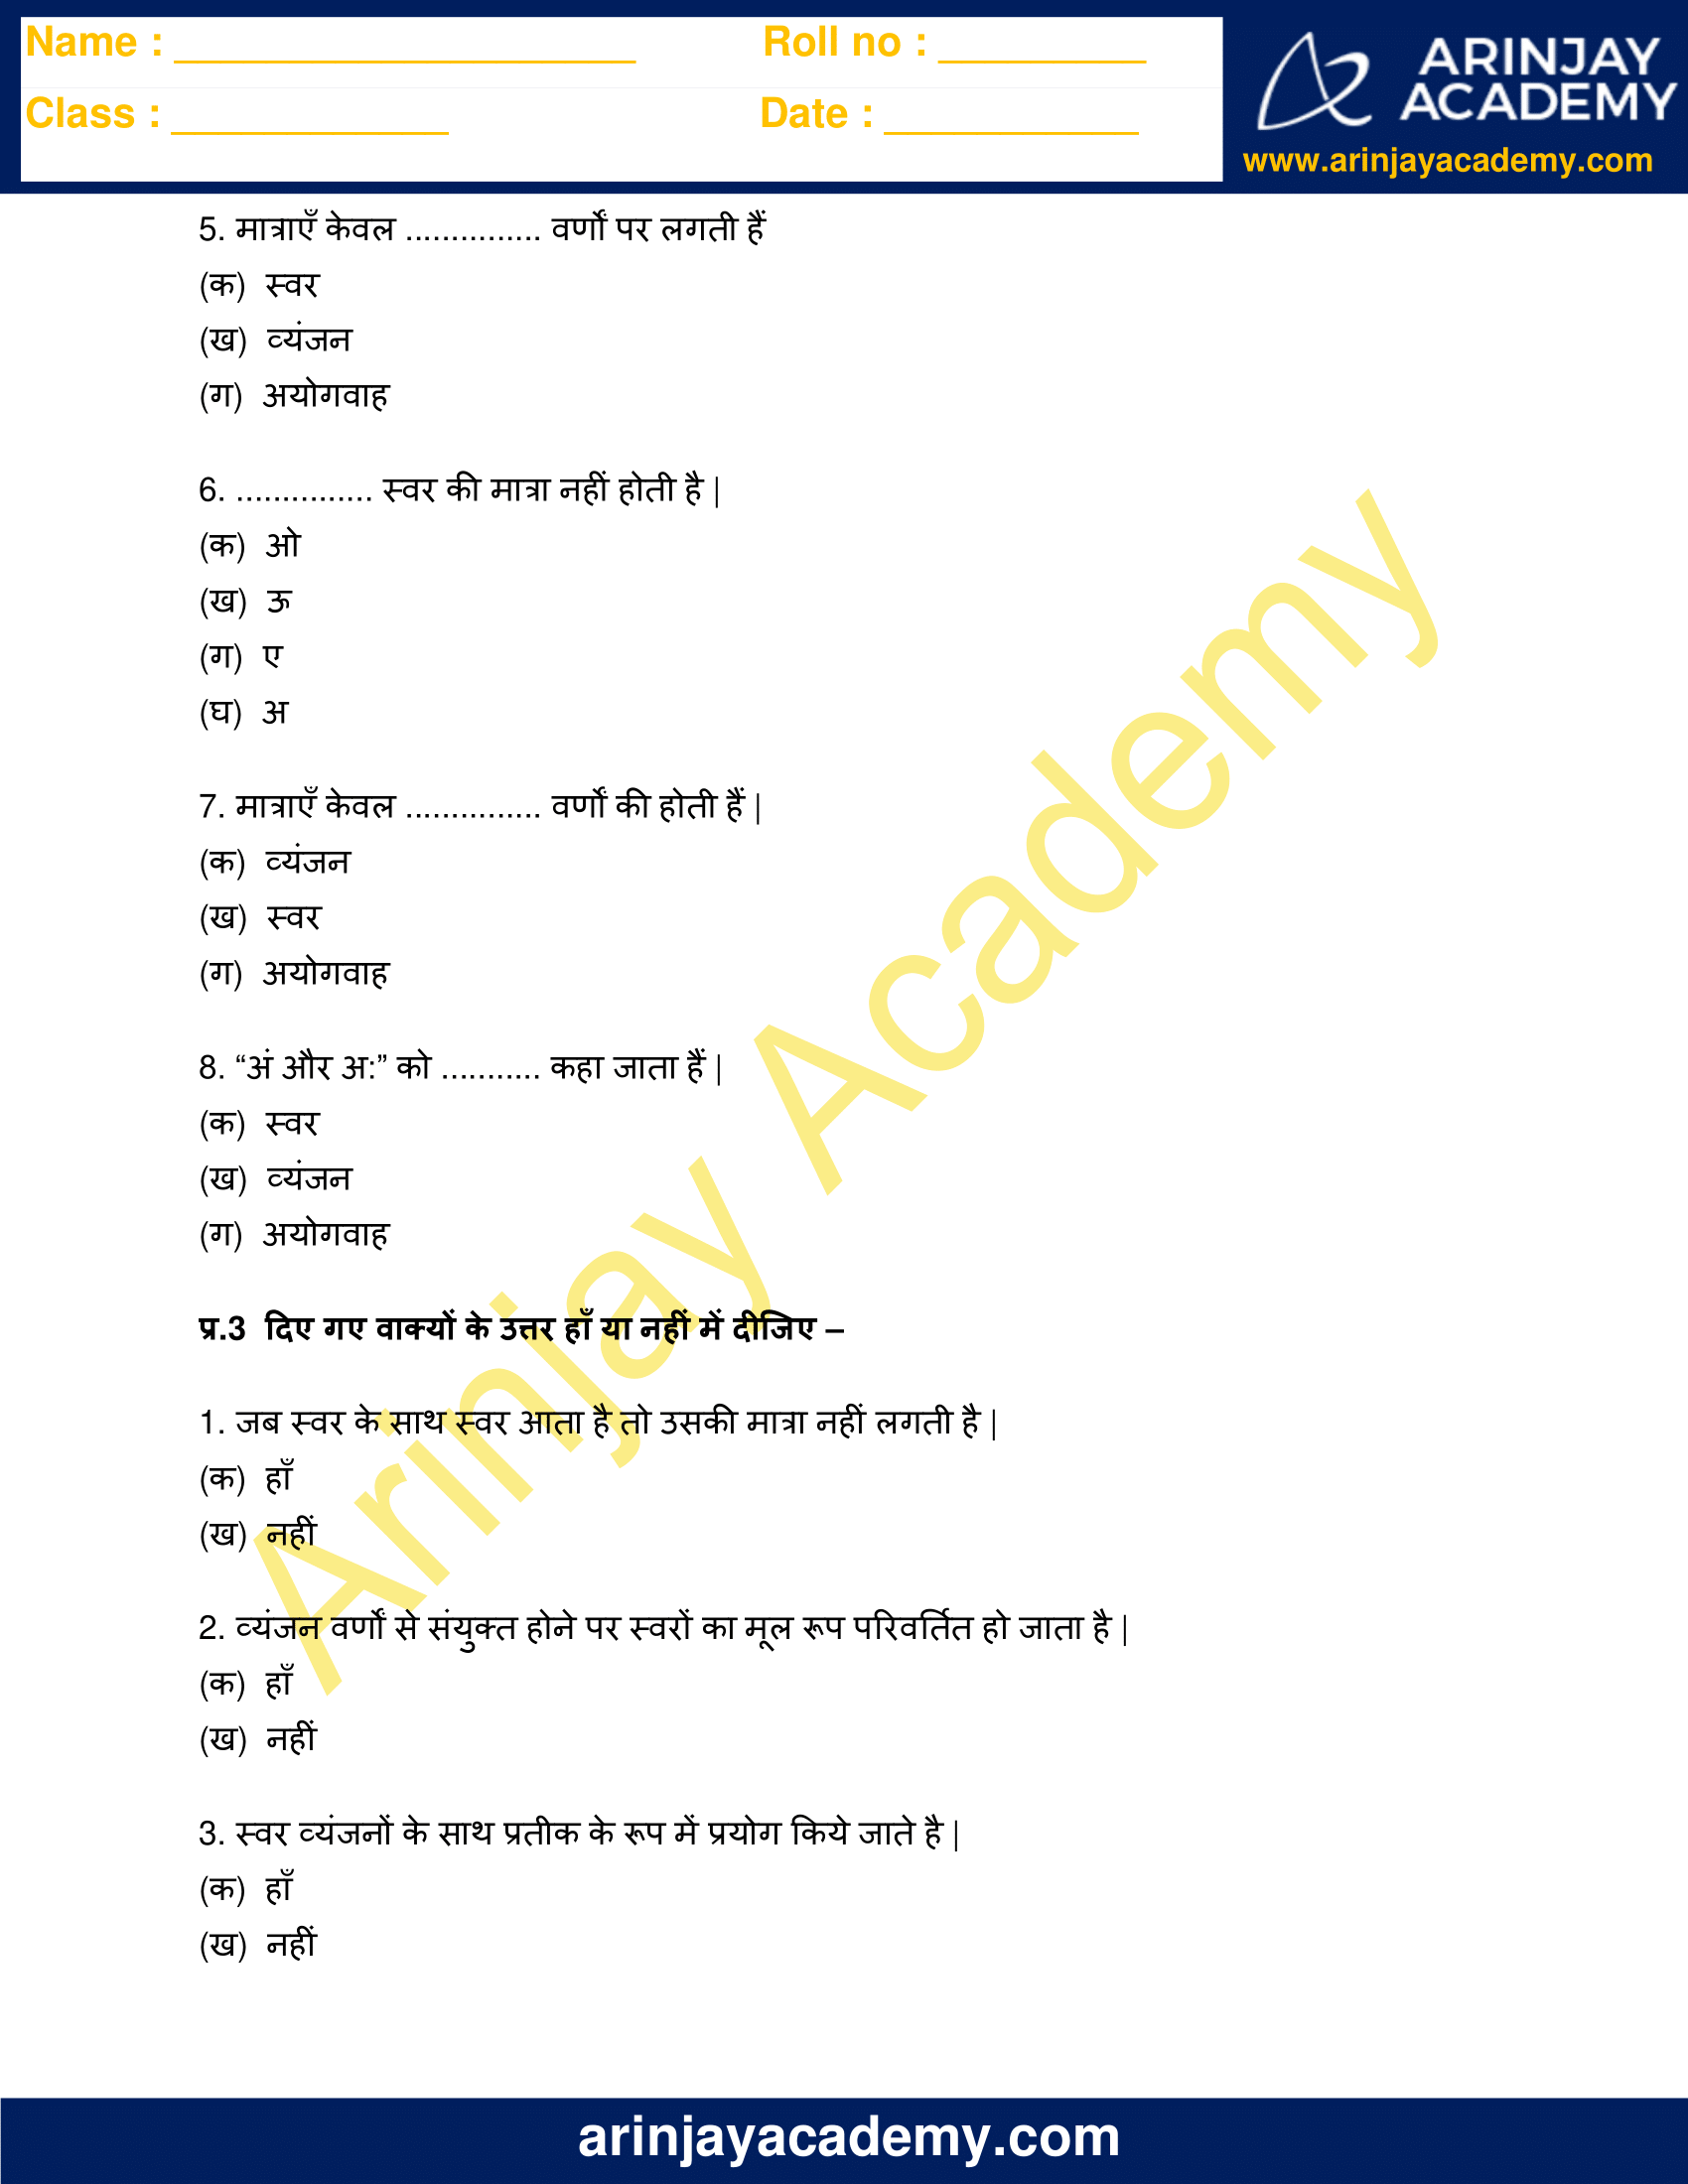 Hindi Matra Gyan Worksheets for Class 3 image 3